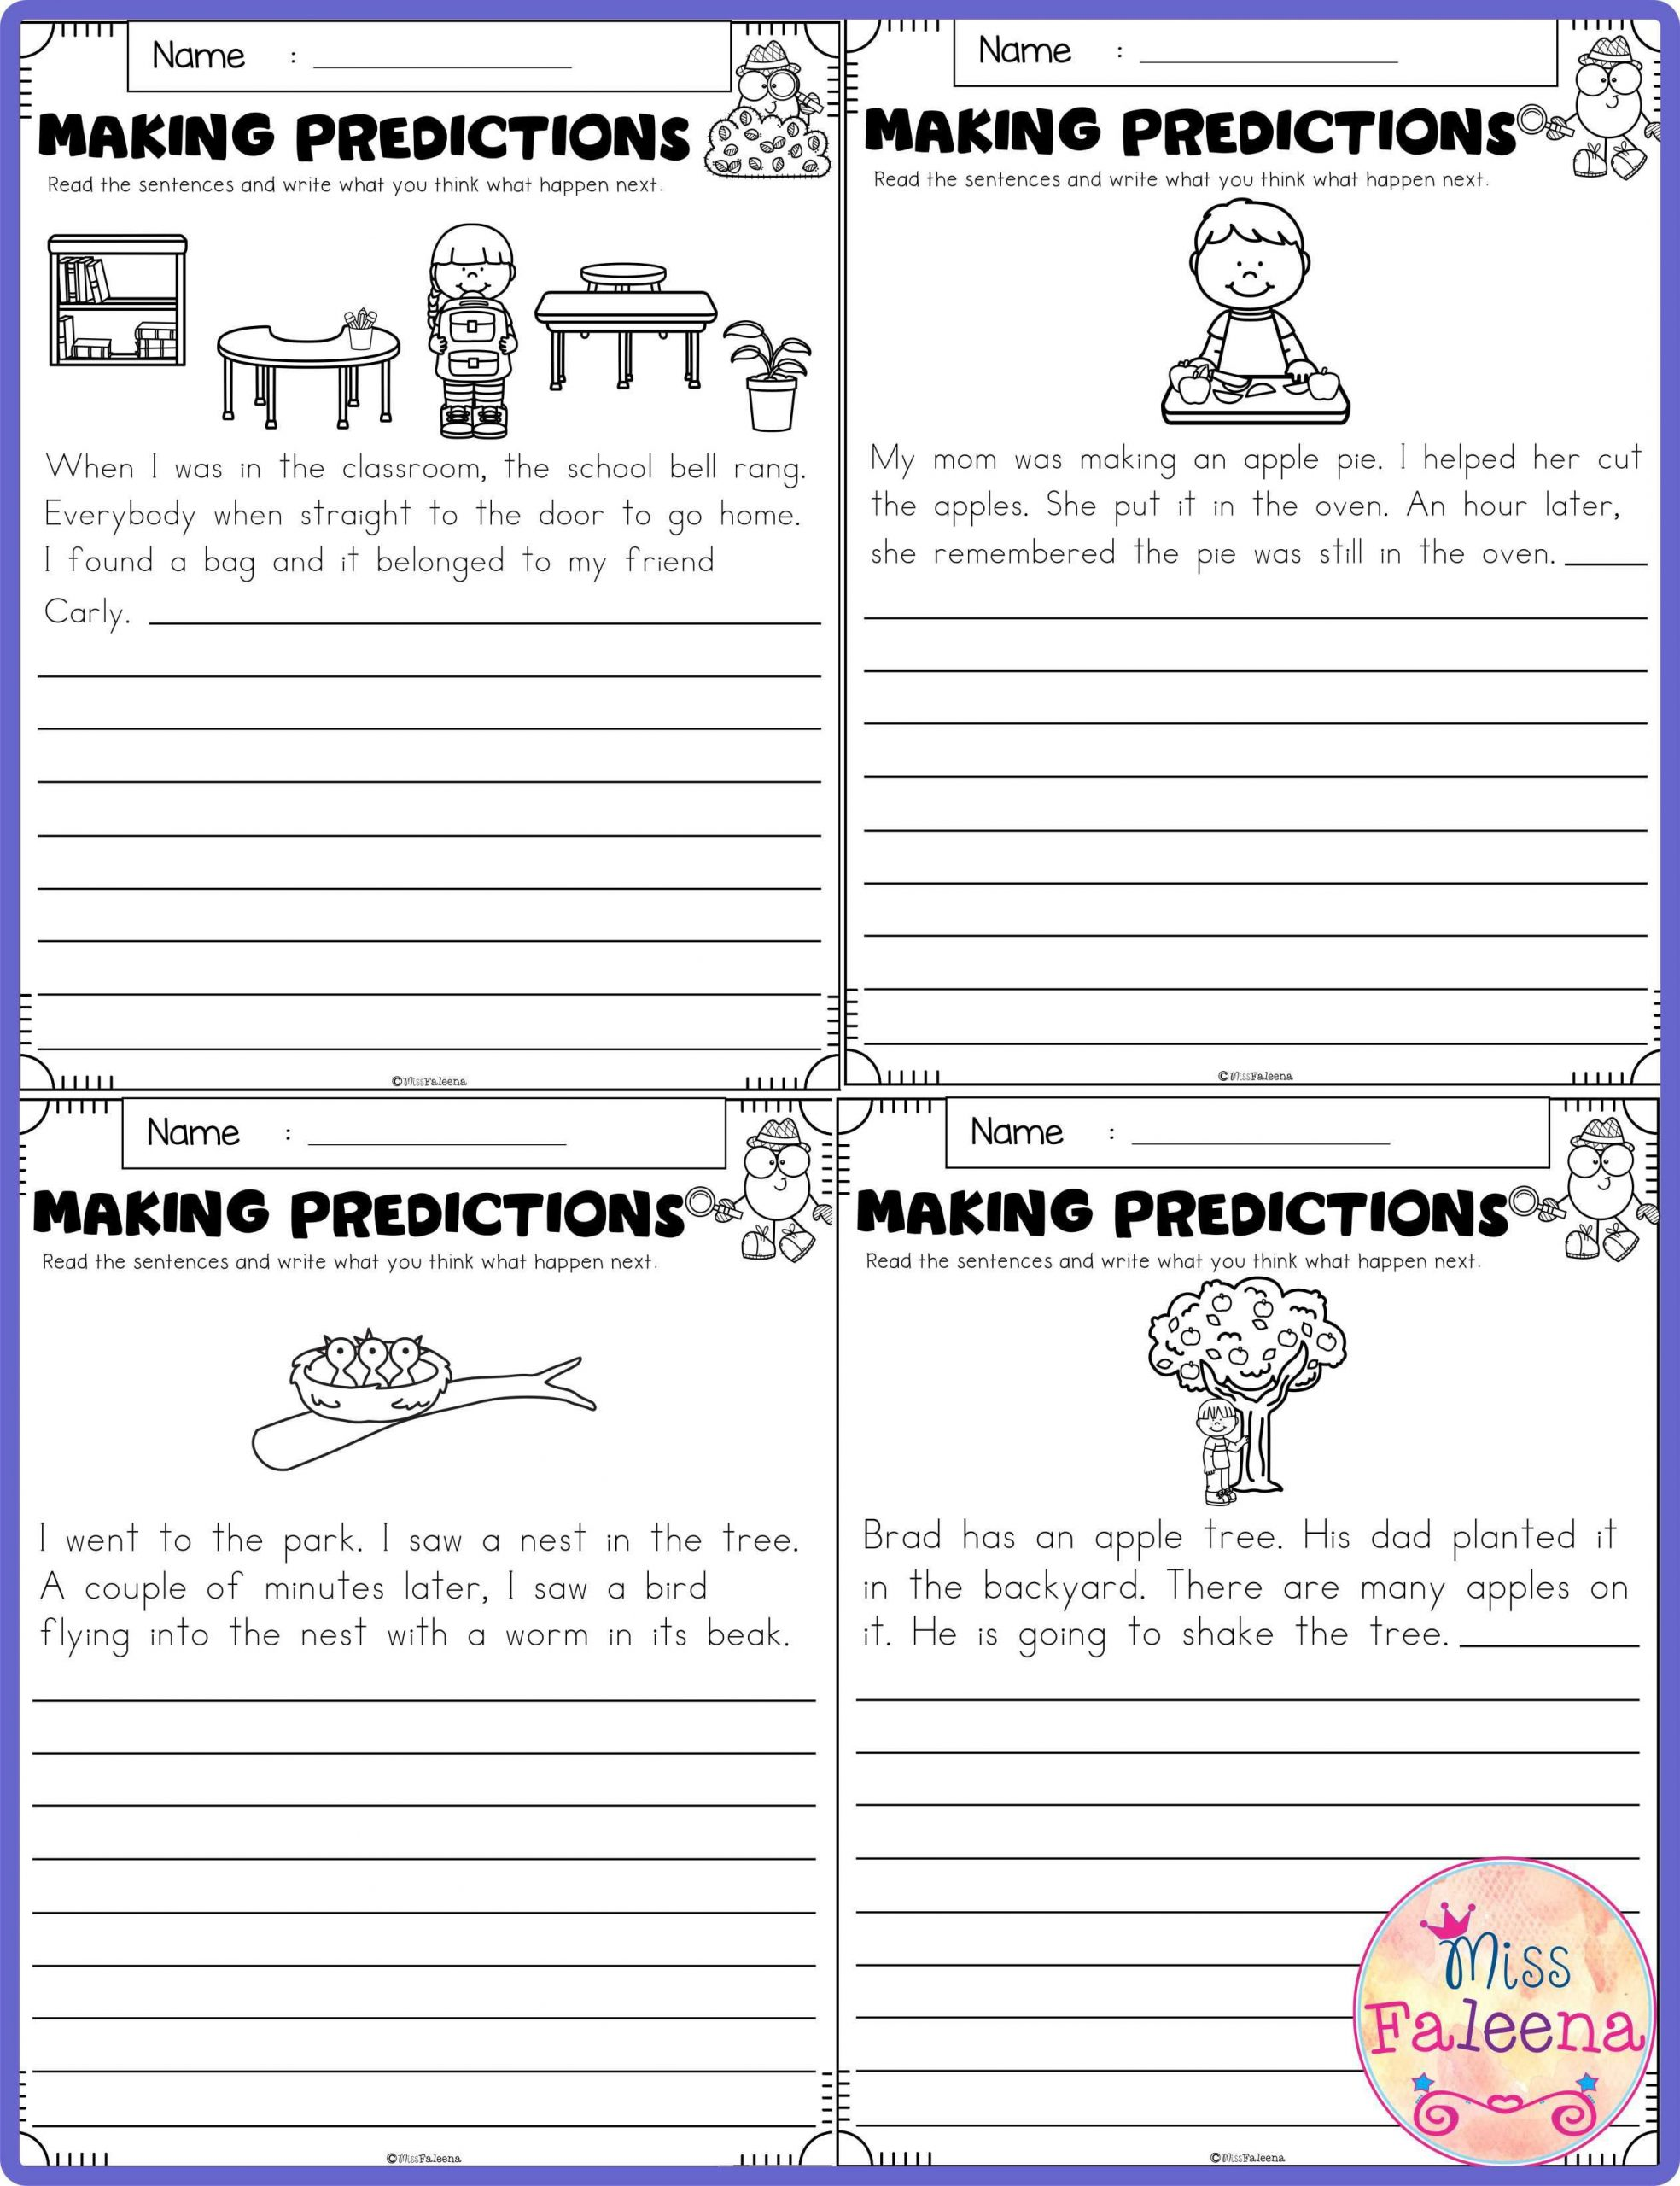 Making Predictions Worksheets 2nd Grade September Making Predictions In 2020 with Images